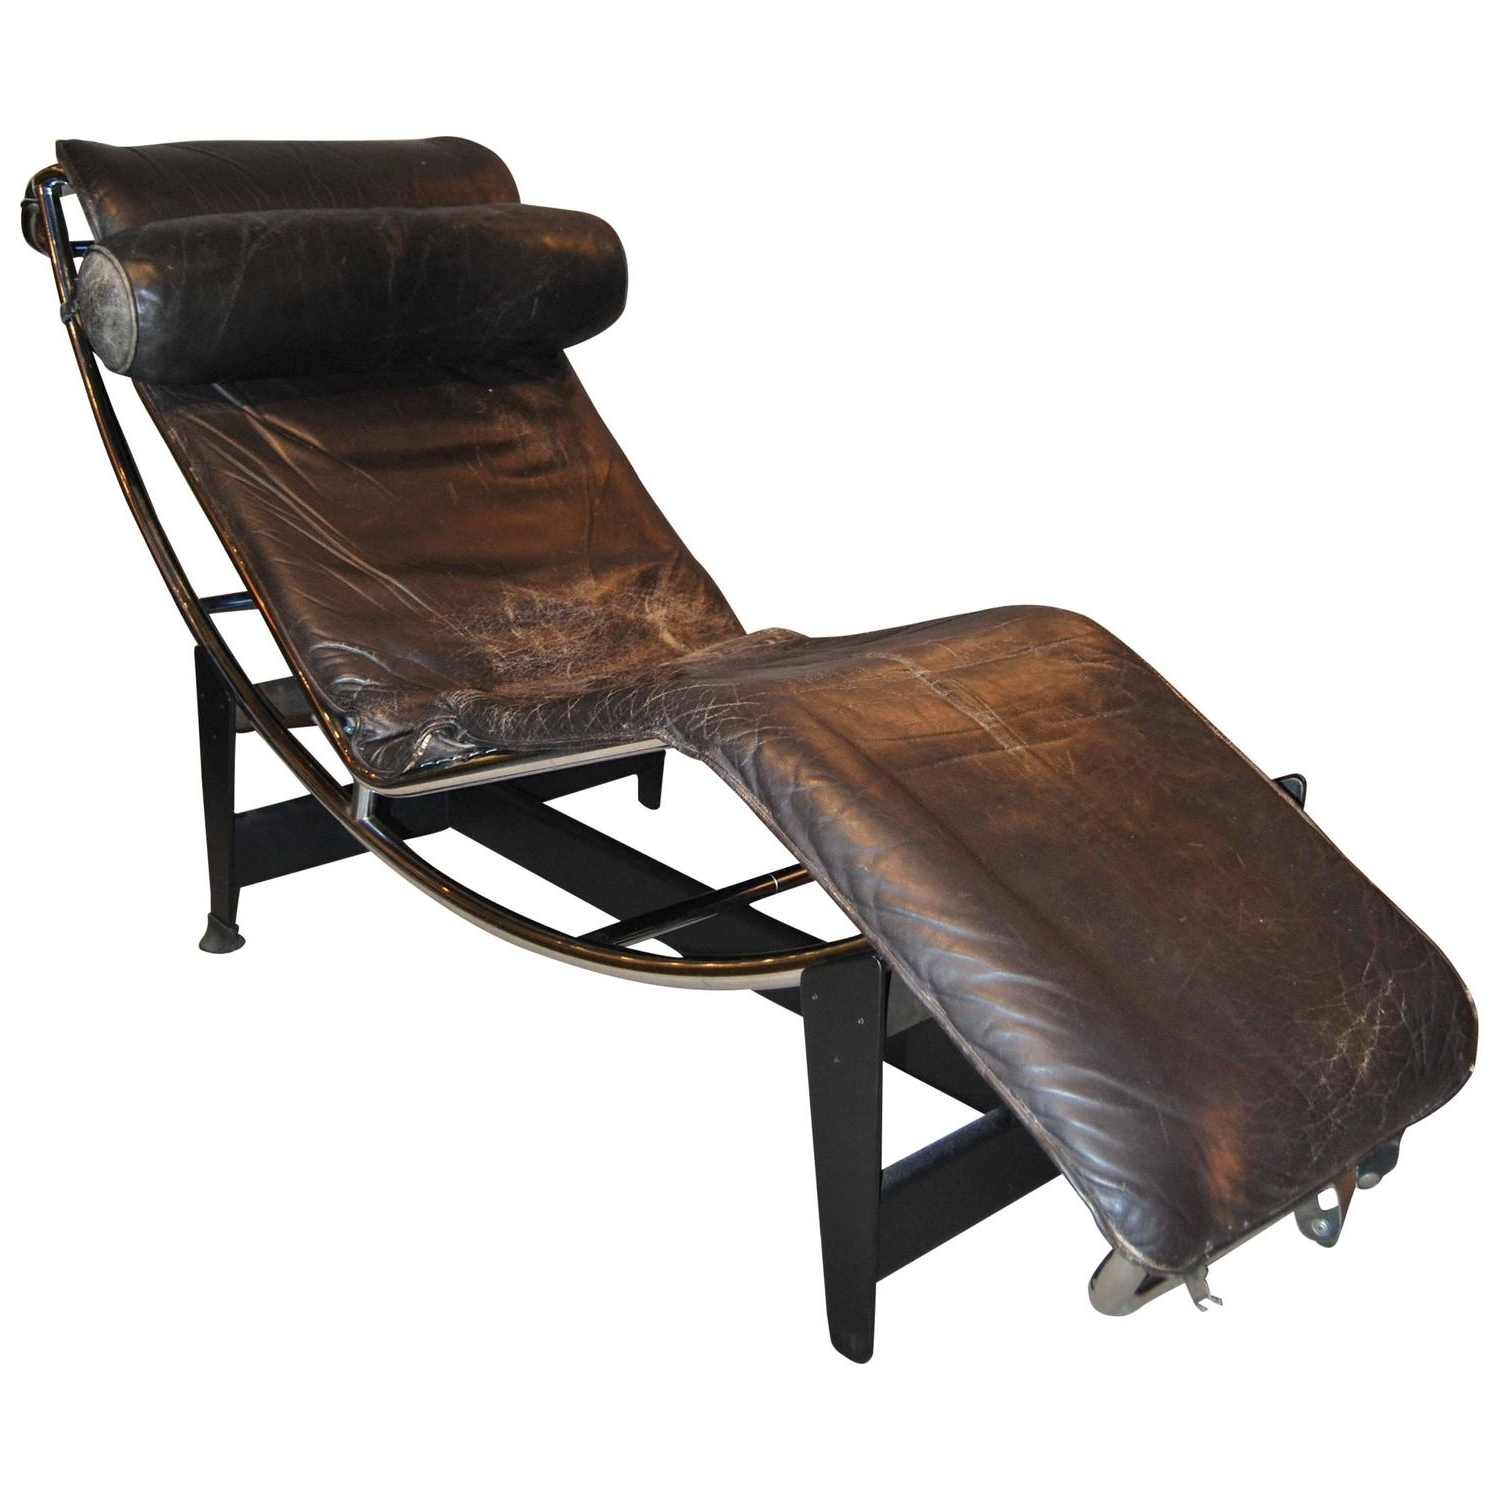 Early Le Corbusier/jeanneret/perriand Lc4 Chaise Lounge For Sale In Trendy Lc4 Chaise Lounges (View 5 of 15)